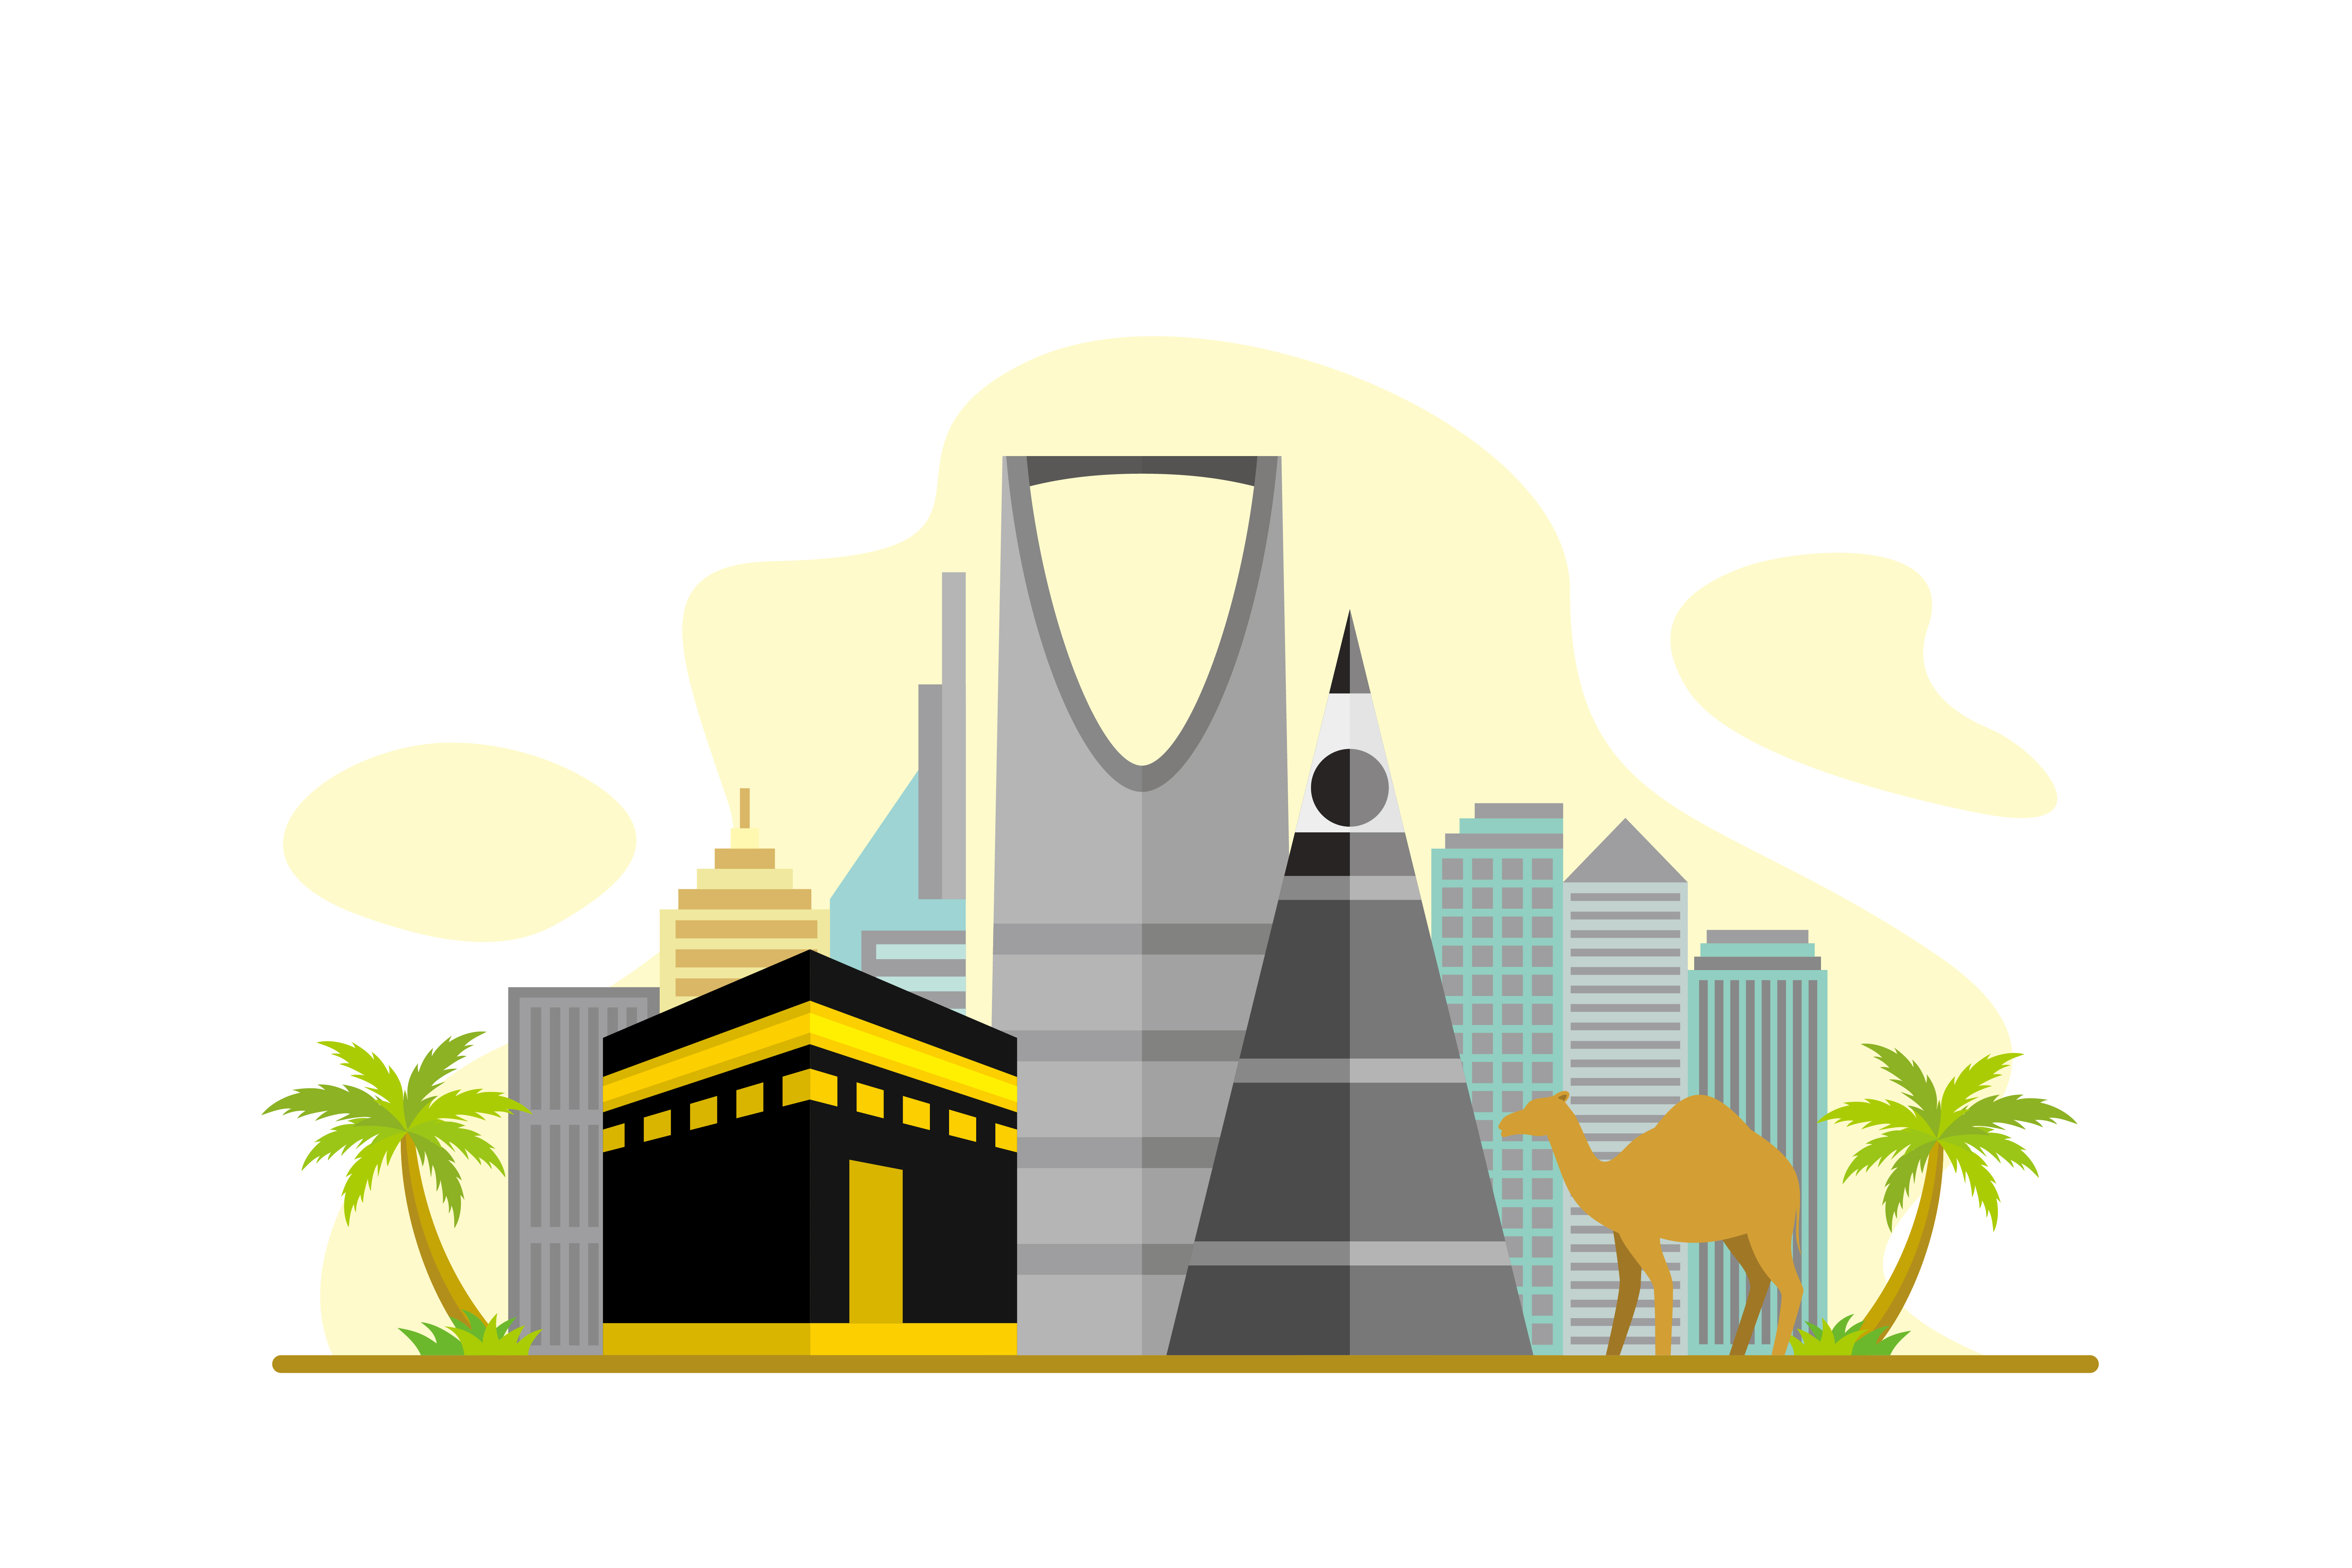 Download Free Saudi Arabia Flat Design Illustration Graphic By Lartestudio for Cricut Explore, Silhouette and other cutting machines.